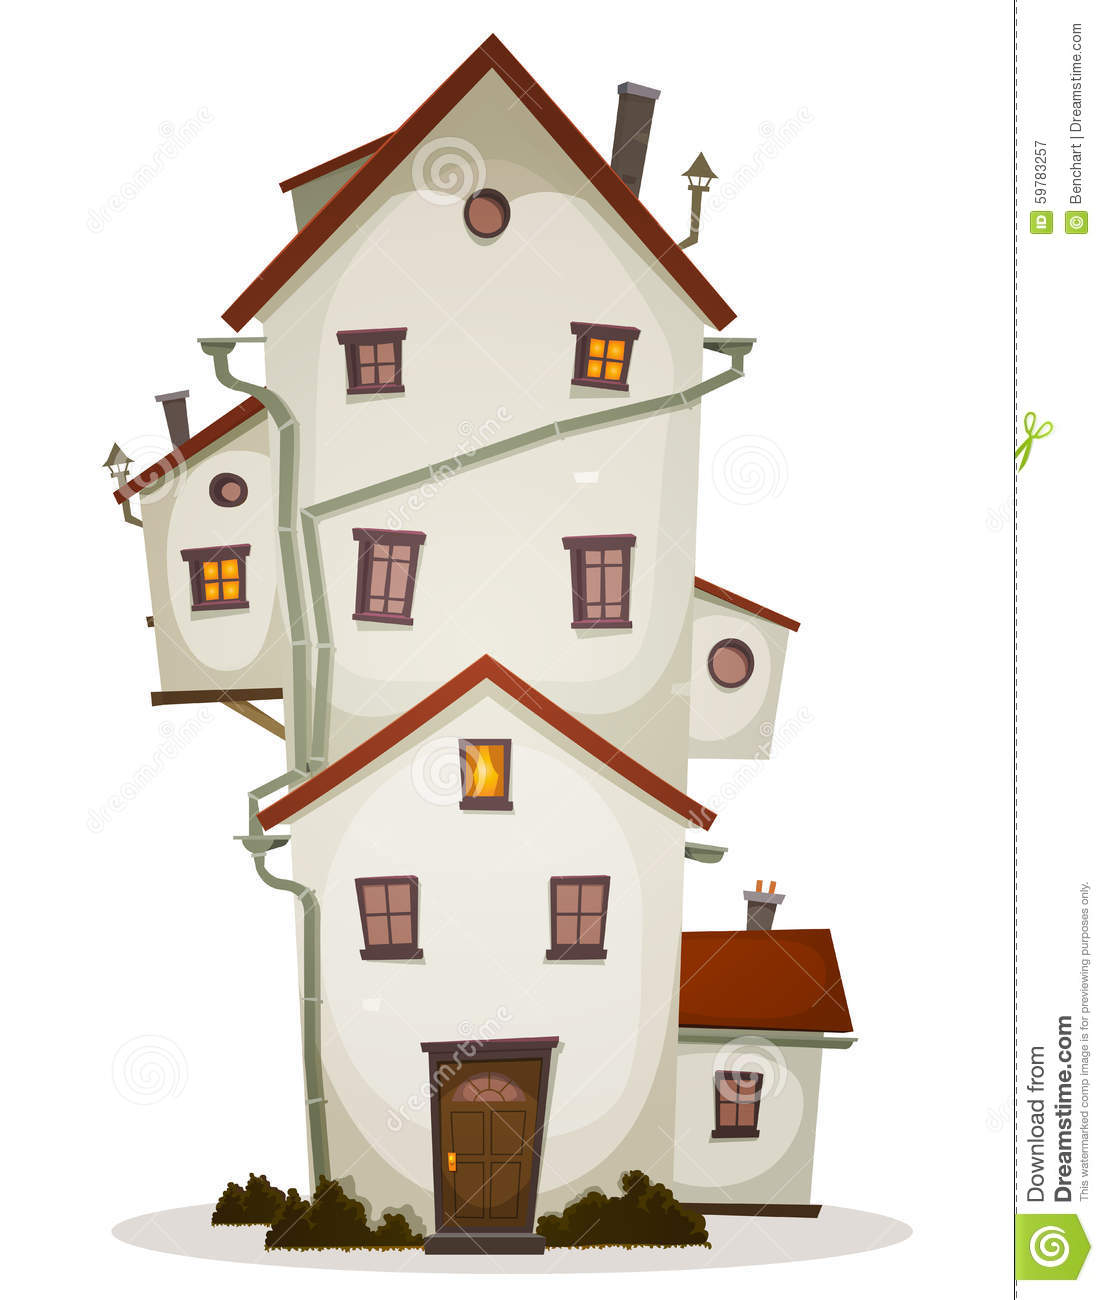 Types of windows for homes - Funny House Castle Or Manor With Lots Of Windows And Outbuilding